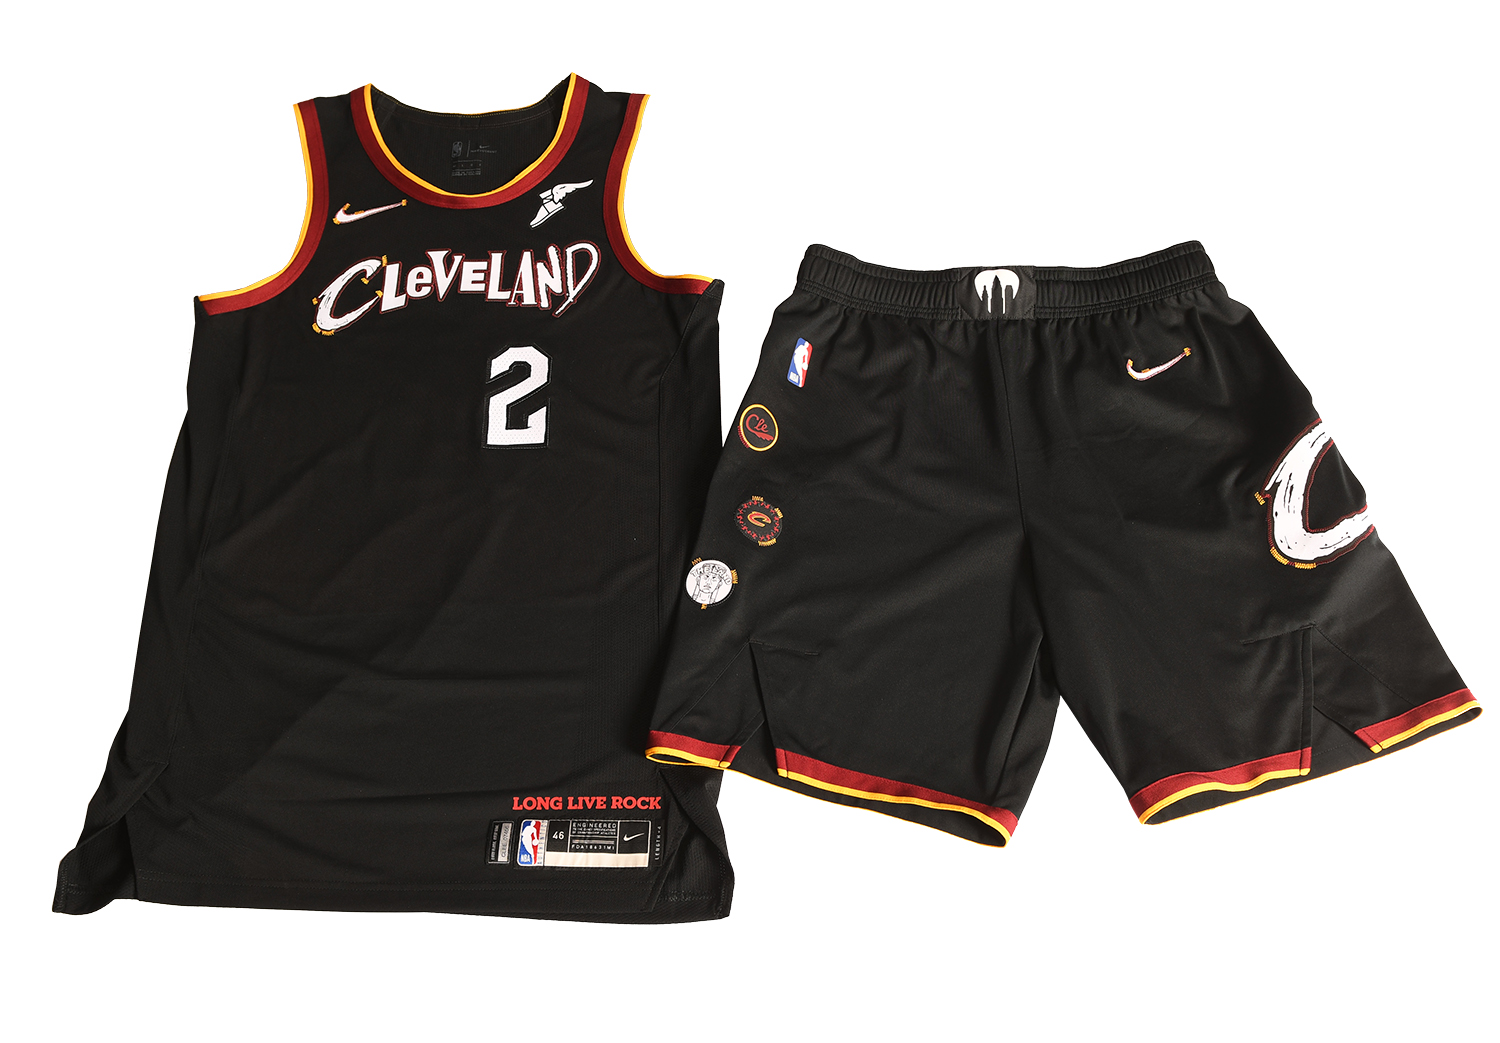 Cavaliers celebrate rock 'n' roll with City Edition uniform